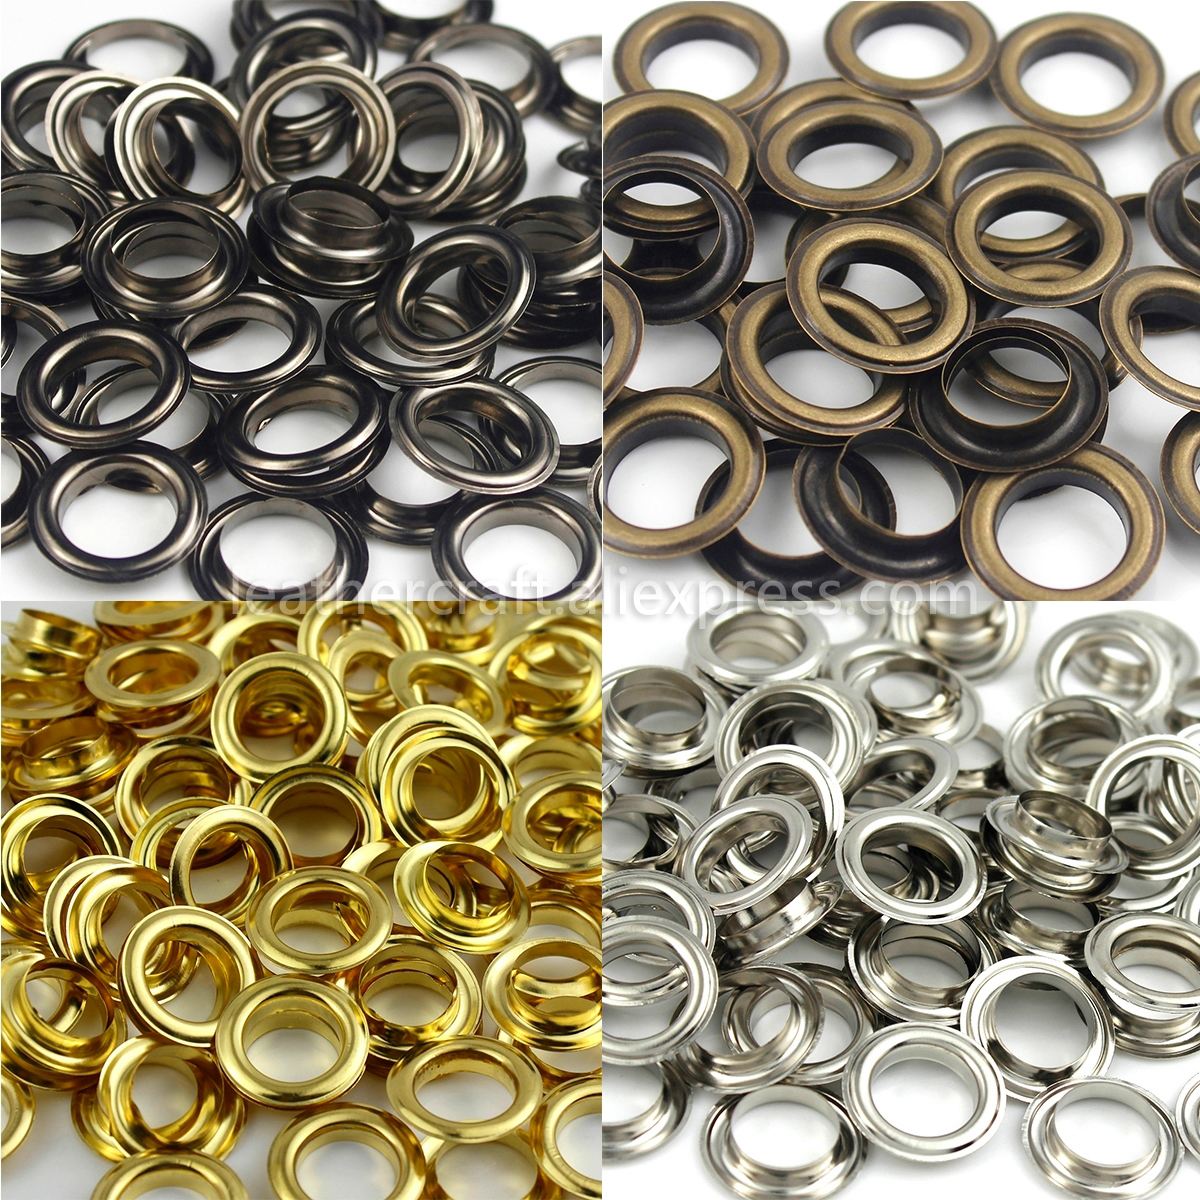 100 x 10mm or 14mm Silver Iron Eyelets with Washers Sewing Crafts DIY Clothing